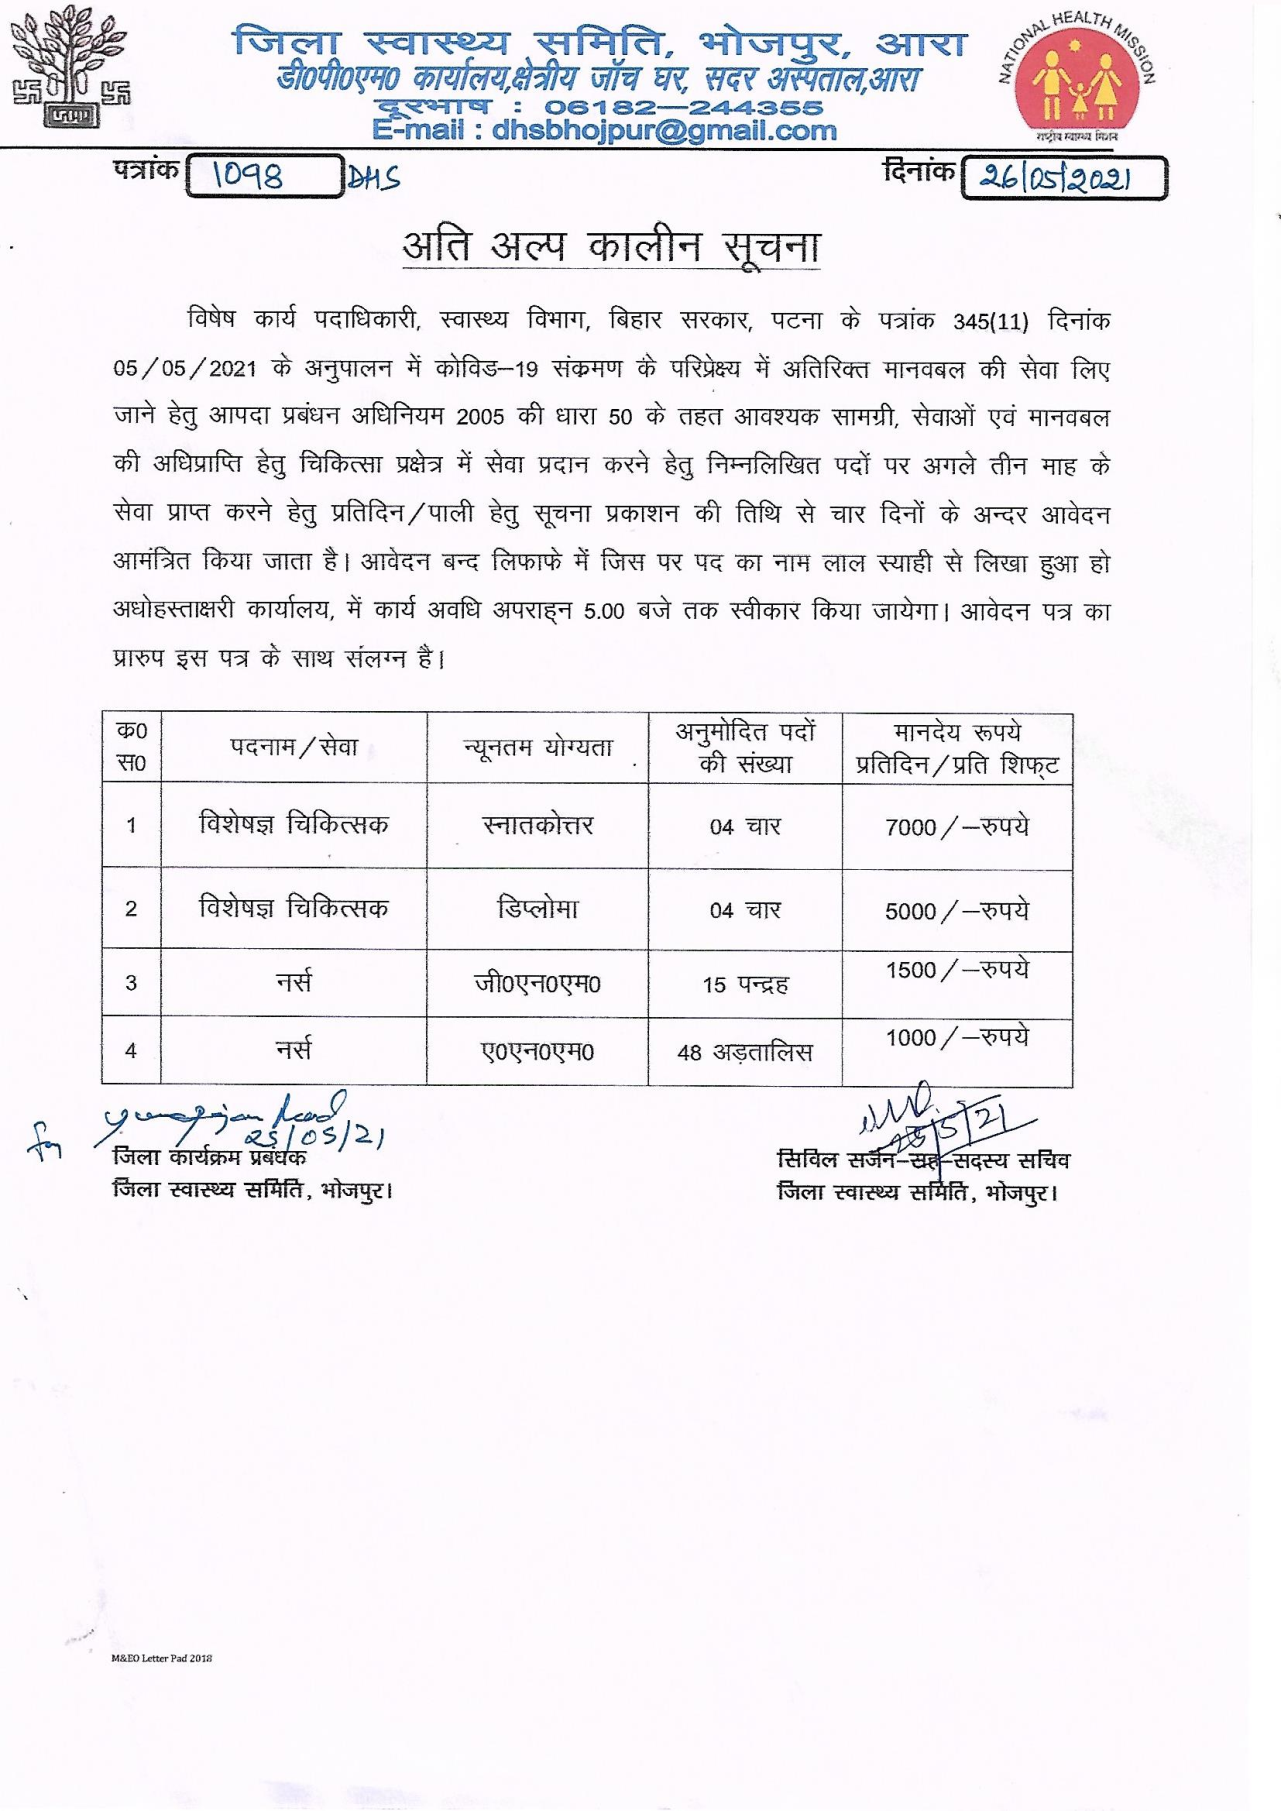 Advertisment for Doctor, GNM, ANM in District Health Society, Bhojpur, Ara Bihar